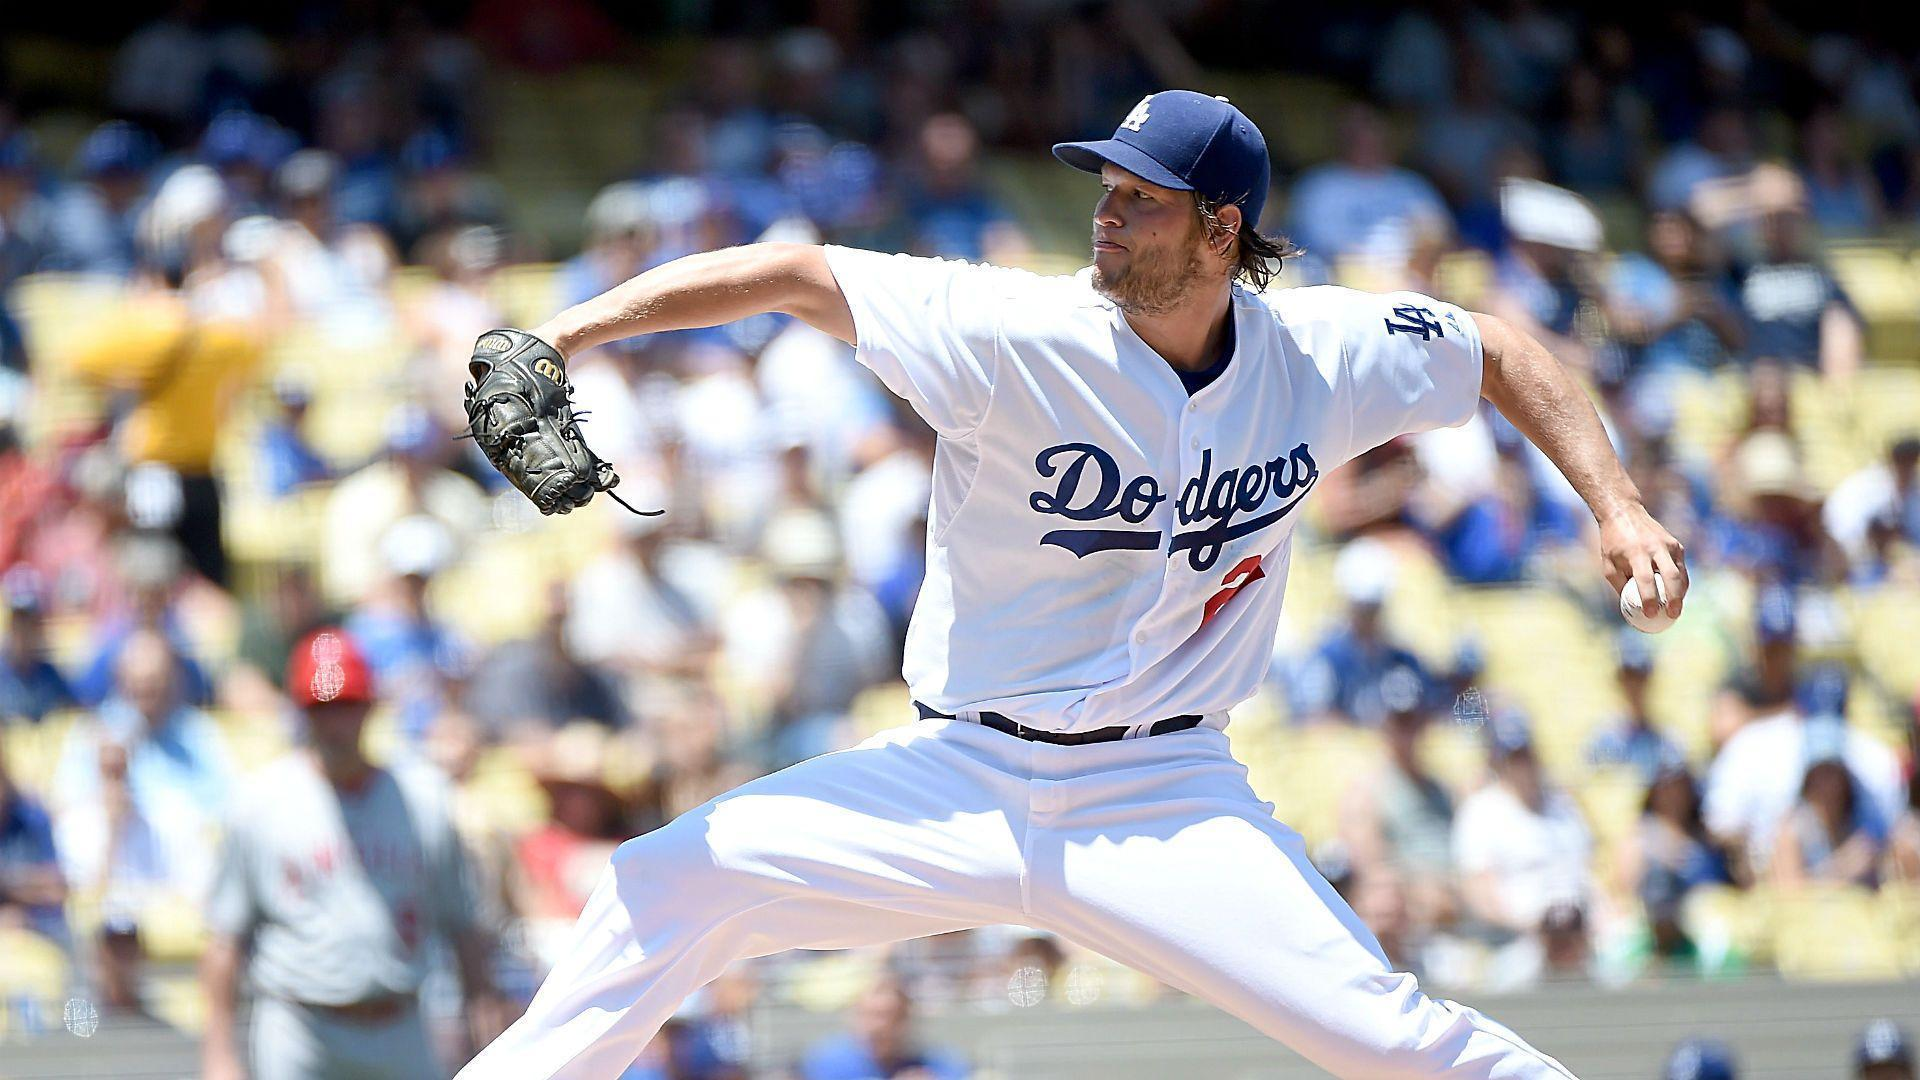 MLB Nightly 9: Kershaw continues scoreless streak, Duda powers